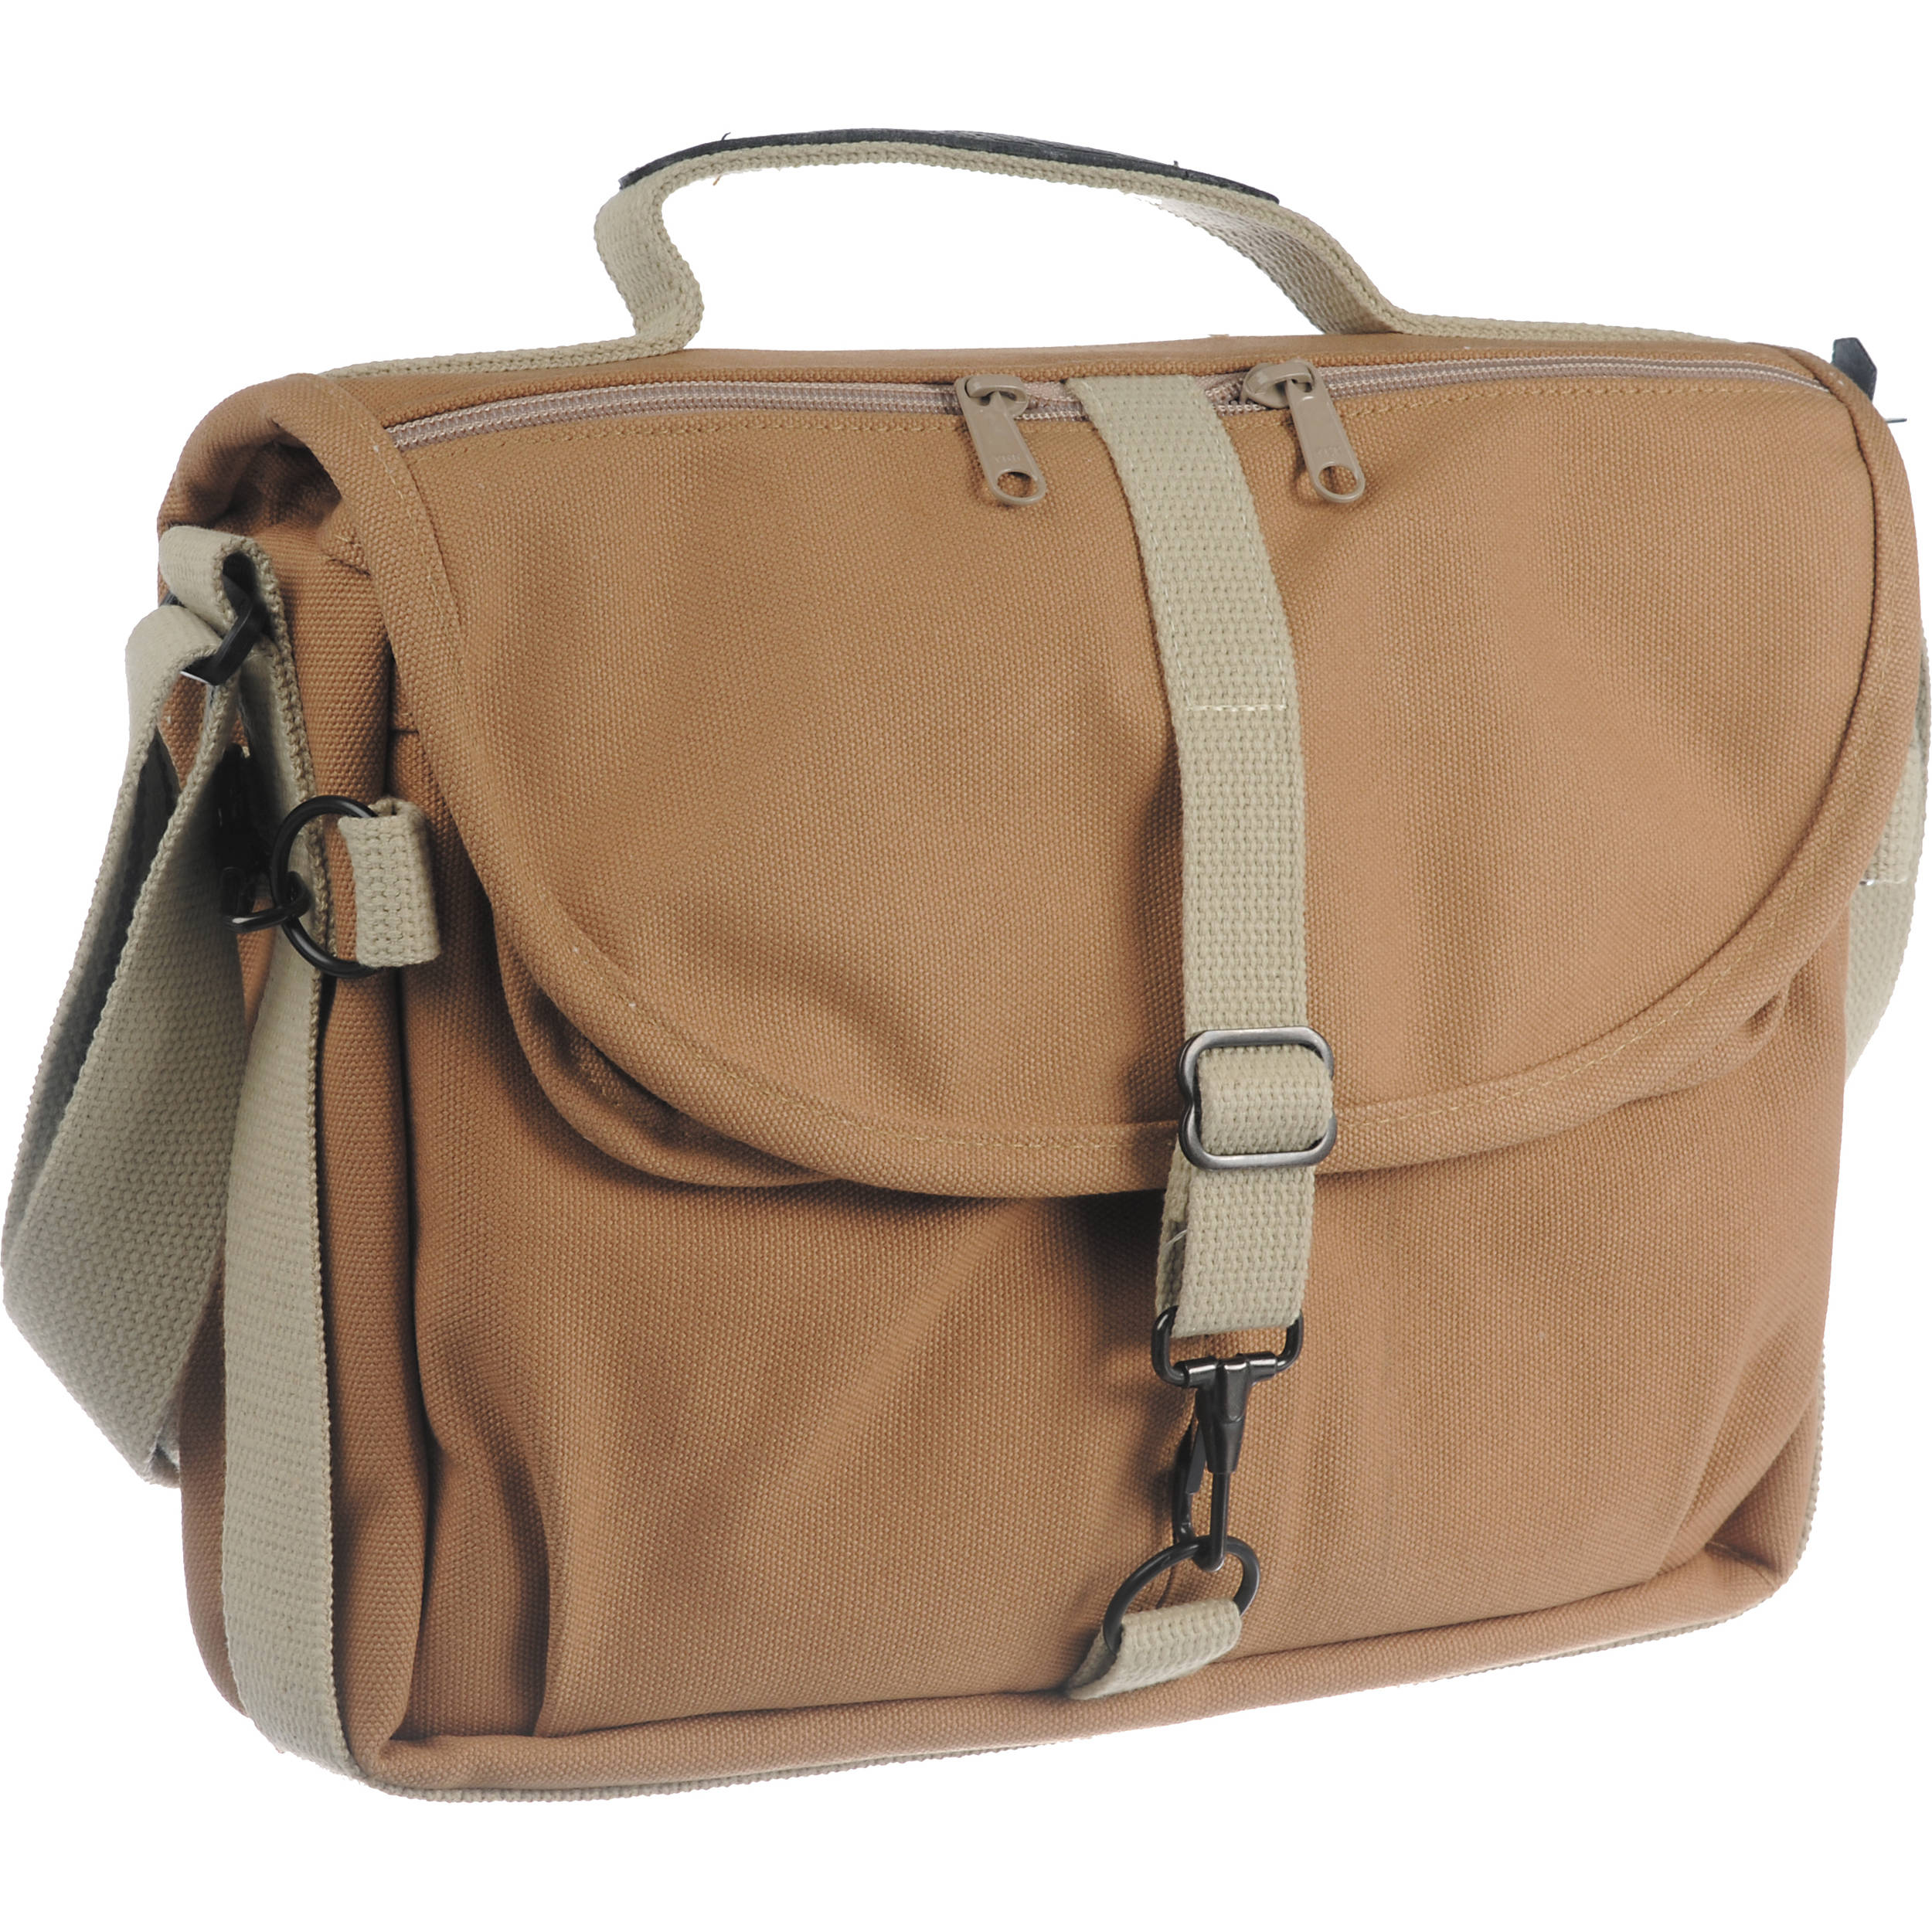 DOMKE F-803 CAMERA SATCHEL/SAN